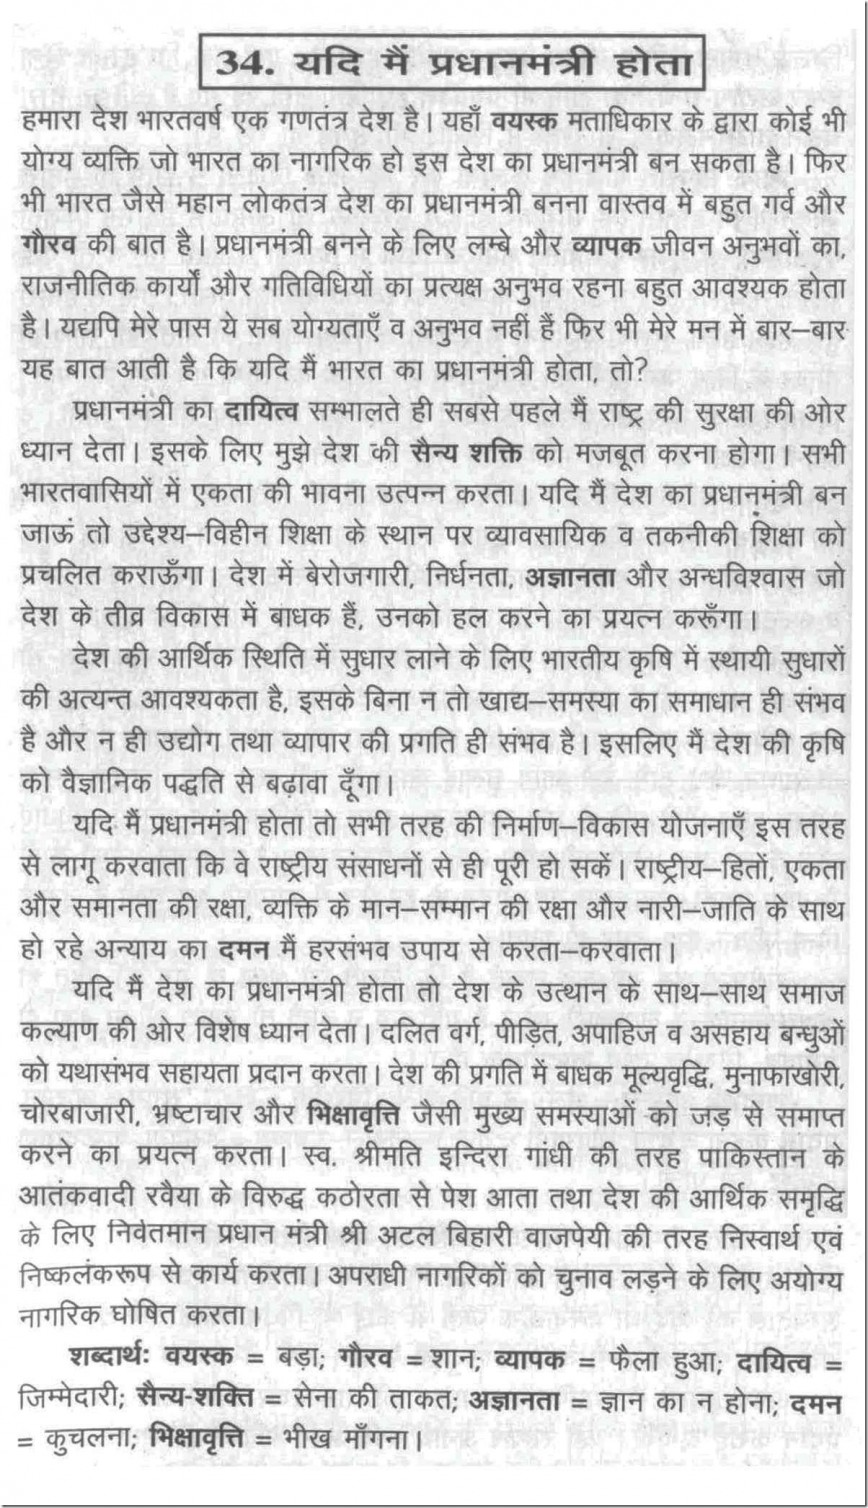 001 Prime Essay Example Imaginative If I Were The Minister In Writing 100034 Writings Outstanding On Narendra Modi Hindi